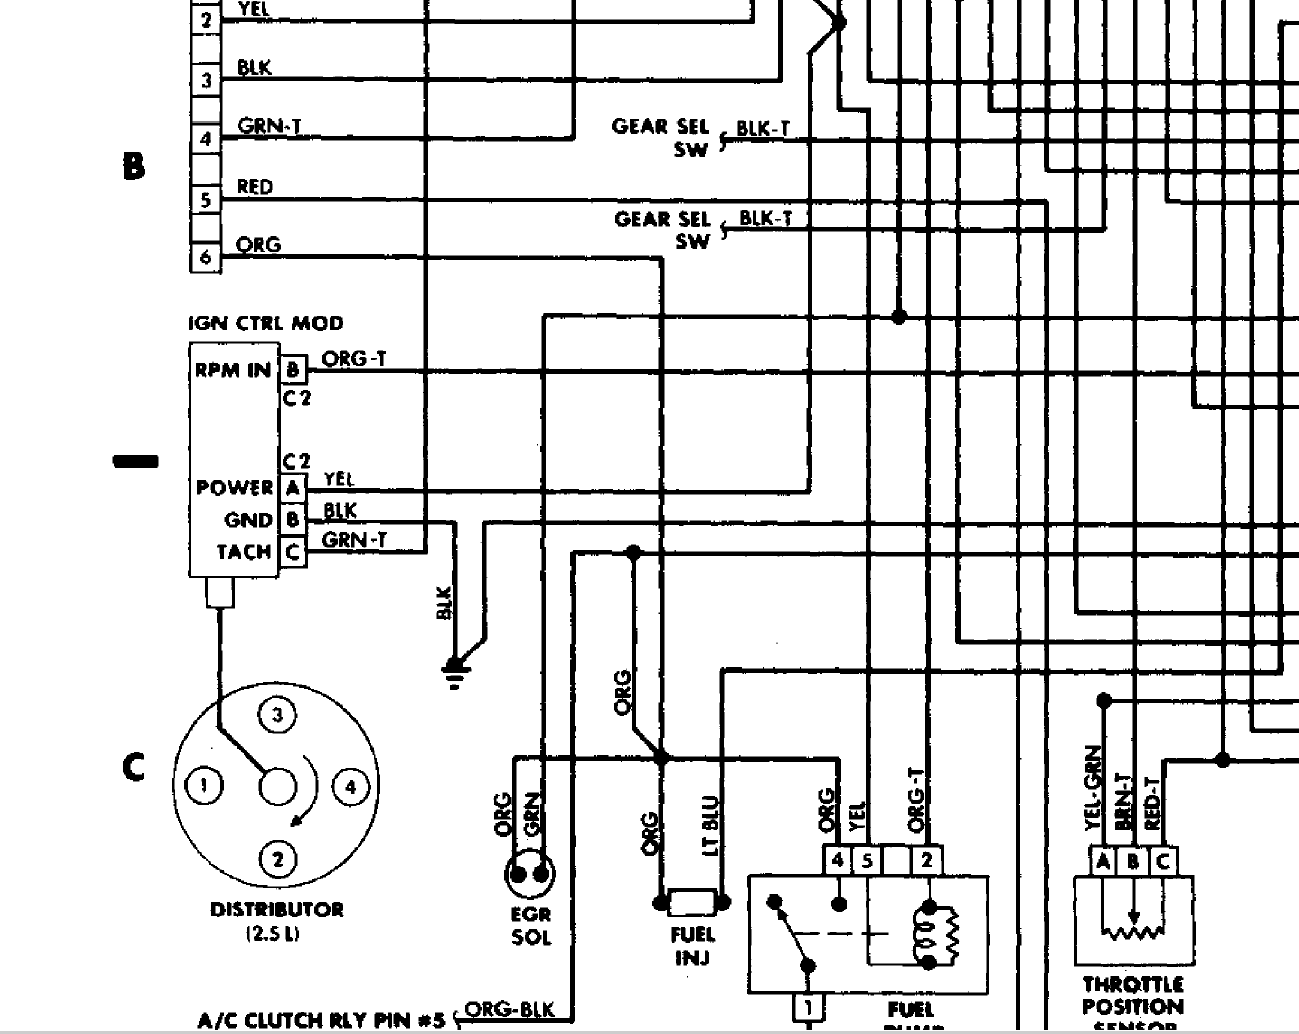 1990 D150 Bulkhead Diagram Electrical Wiring Diagrams Dodge Ramcharger Jeep Wrangler 2 5 Truck 1988 Yj